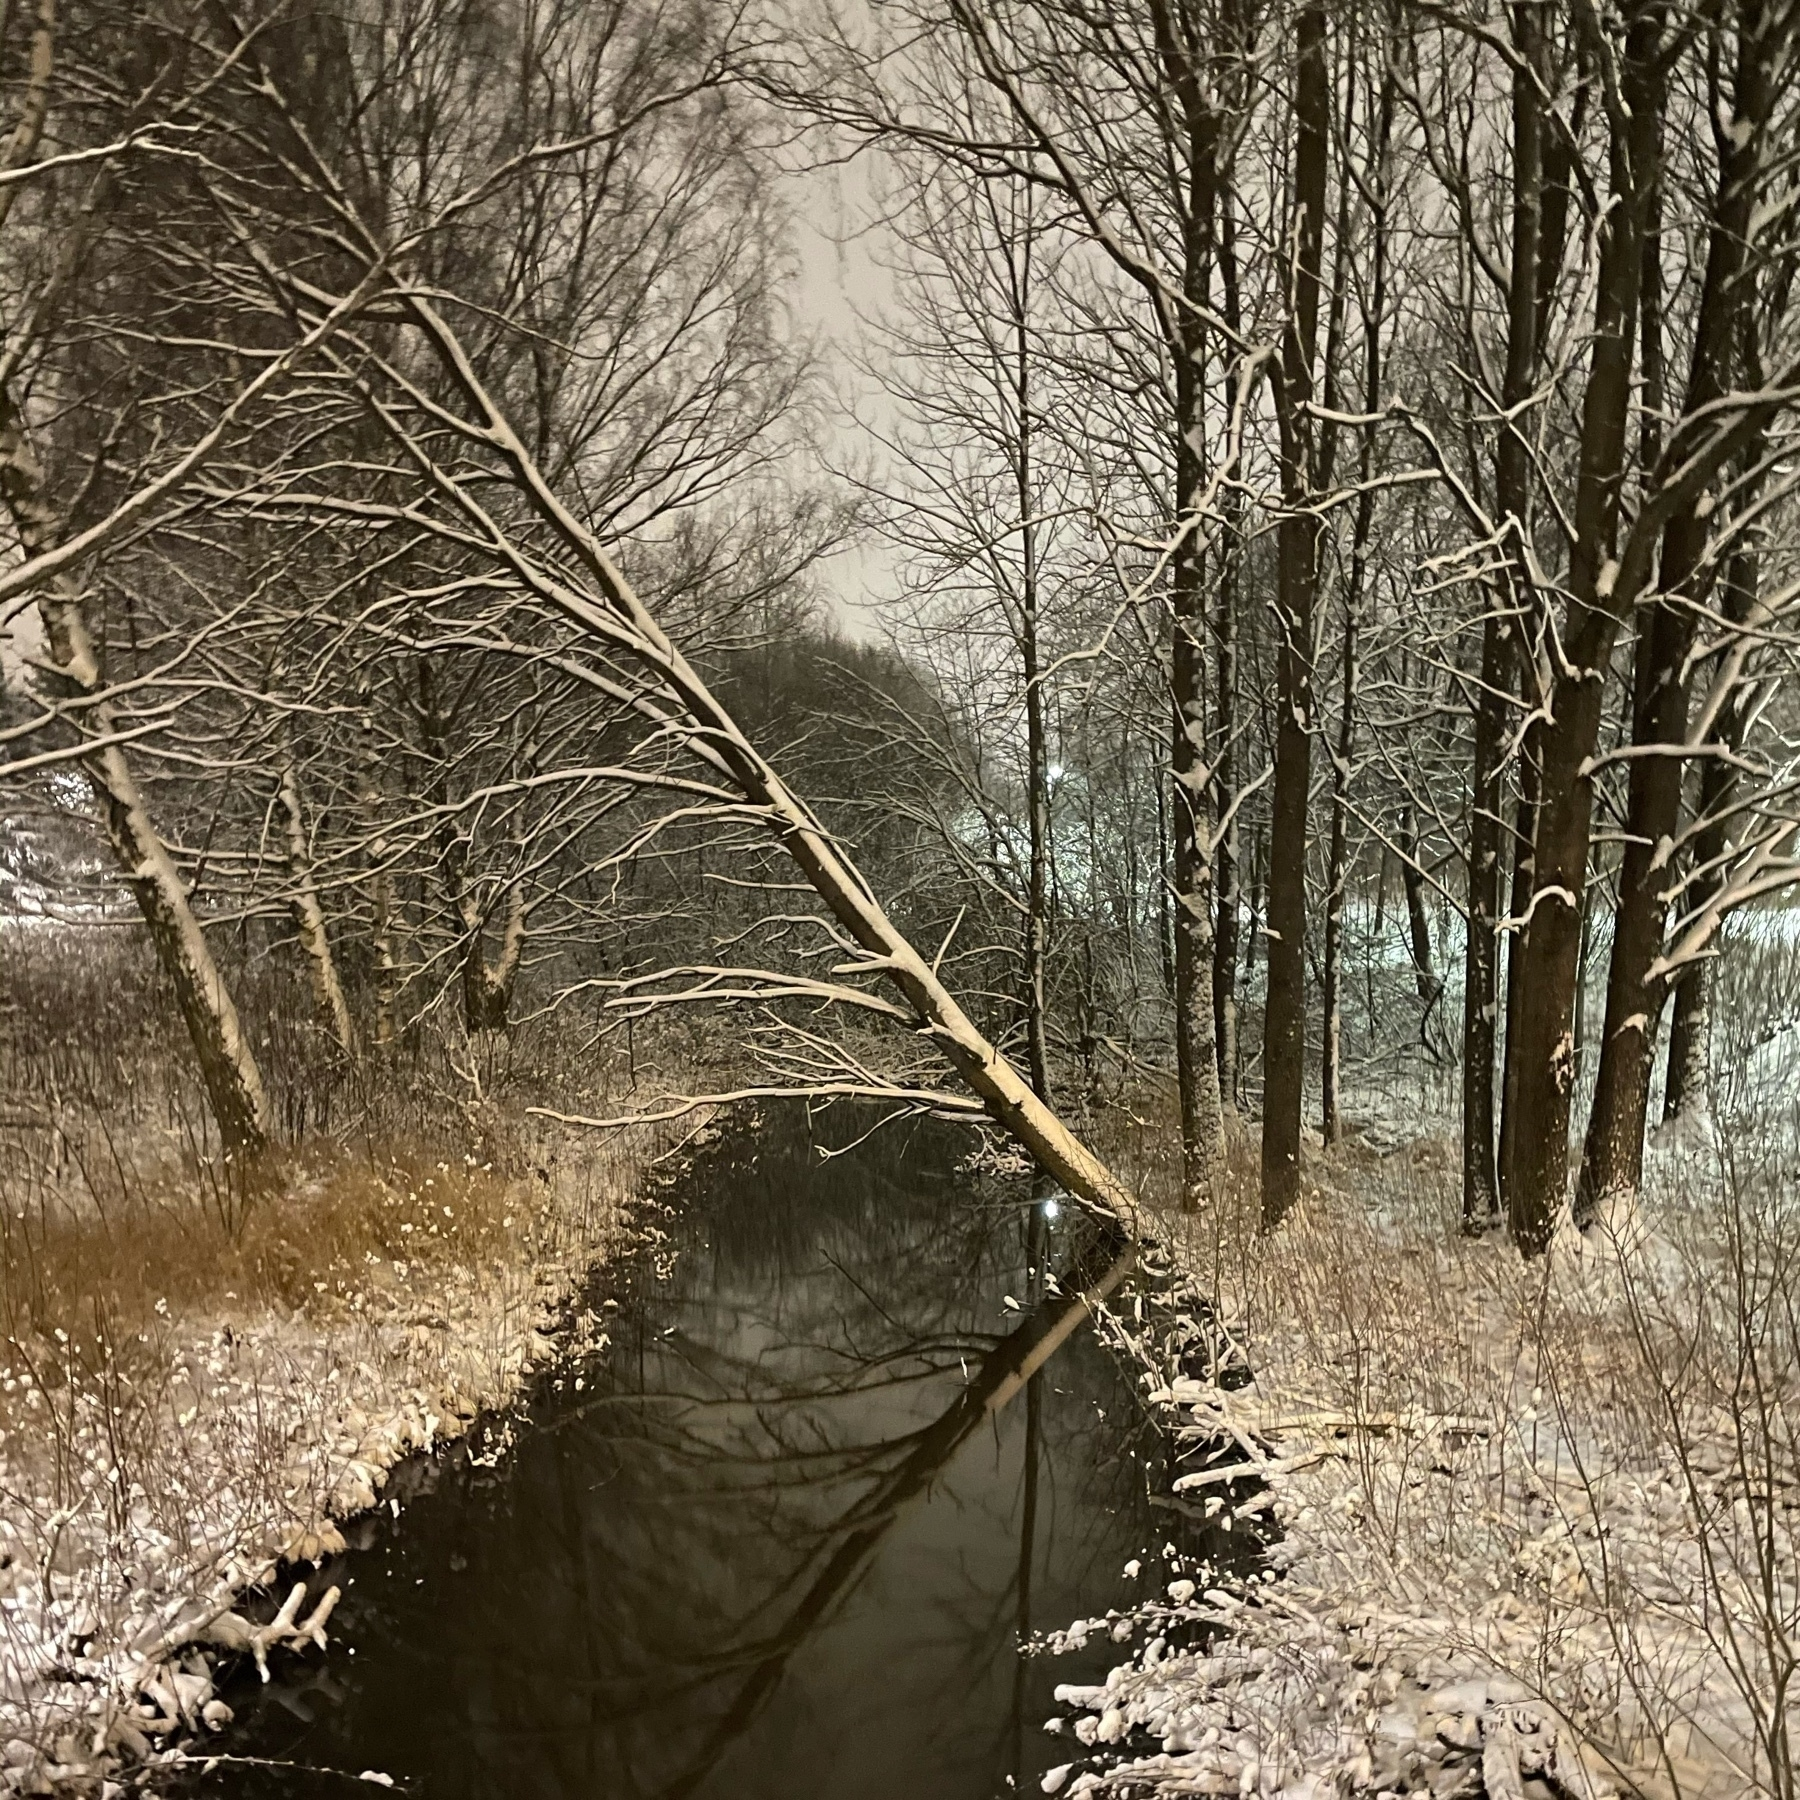 snowy trees leaning over a dark stream still flowing free